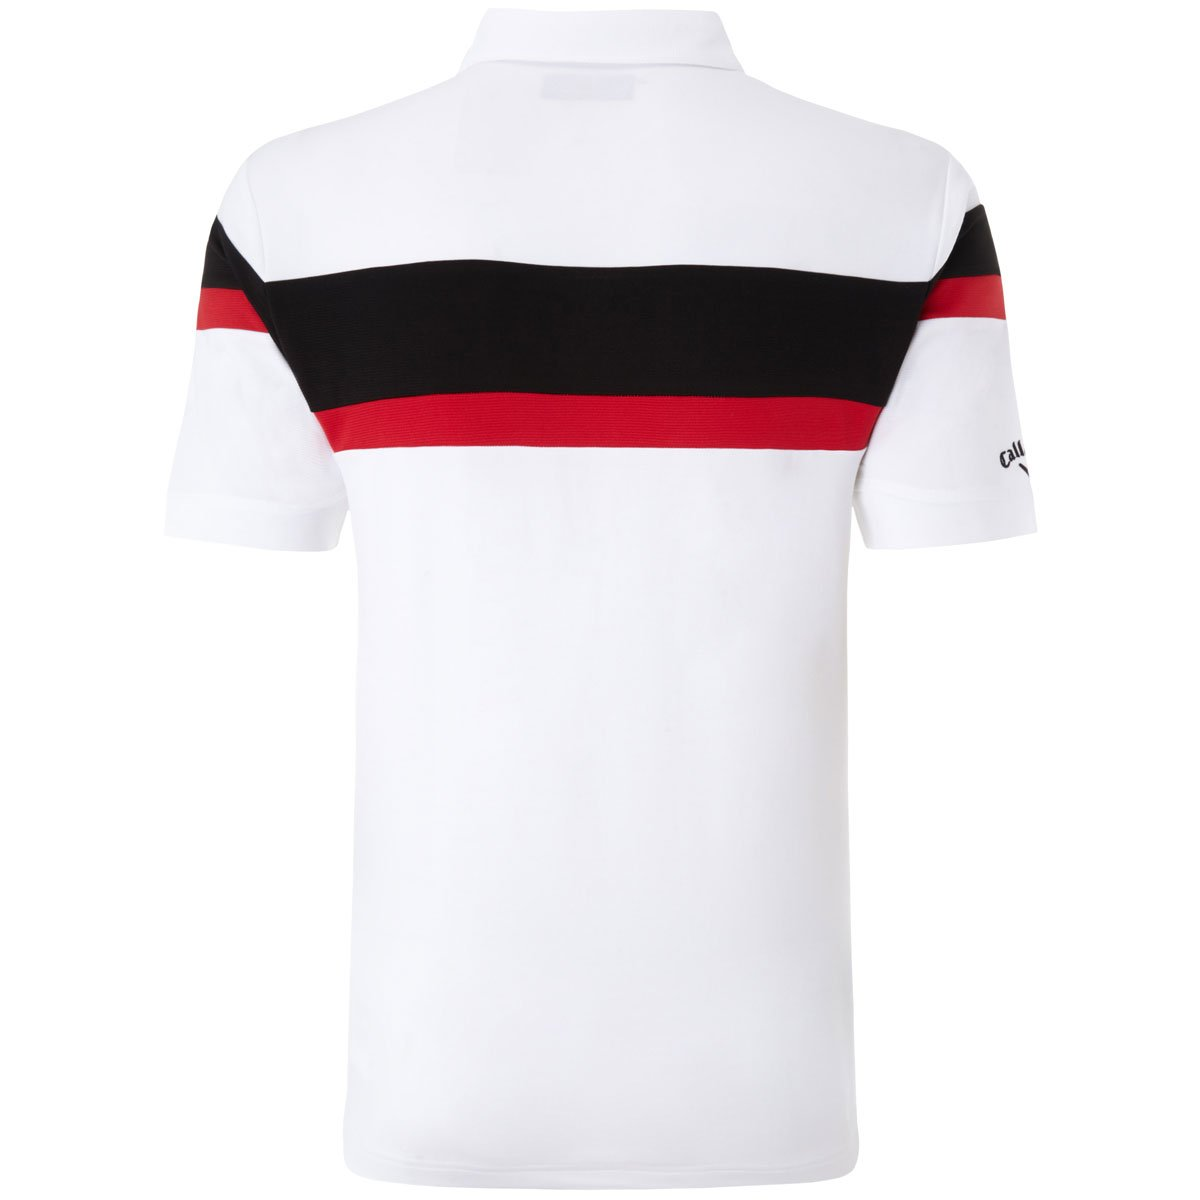 Callaway Golf - Polo de Hombre Chest Block: Amazon.es: Deportes y ...